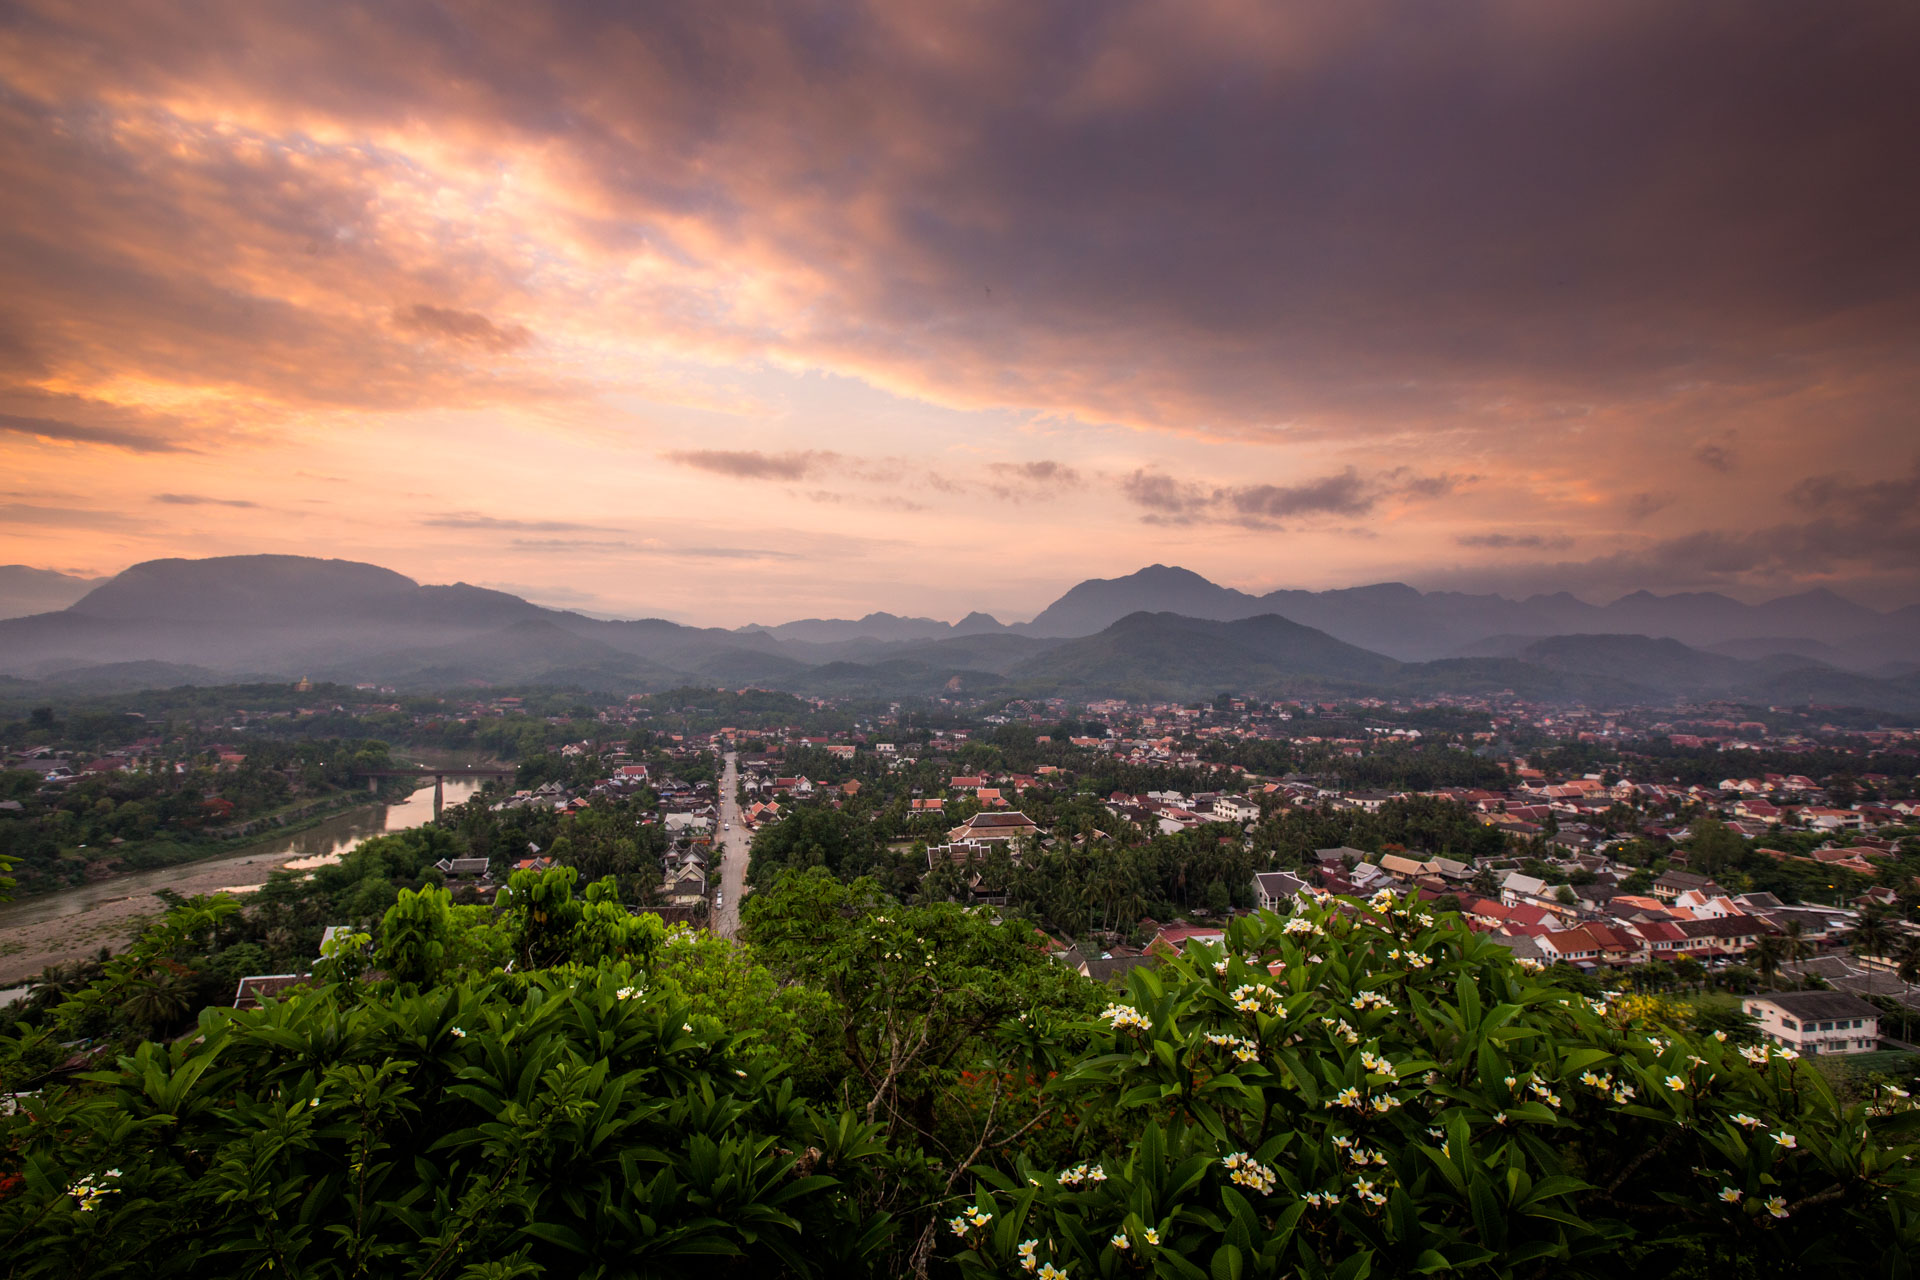 Sunrise looking out over Luang Prabang